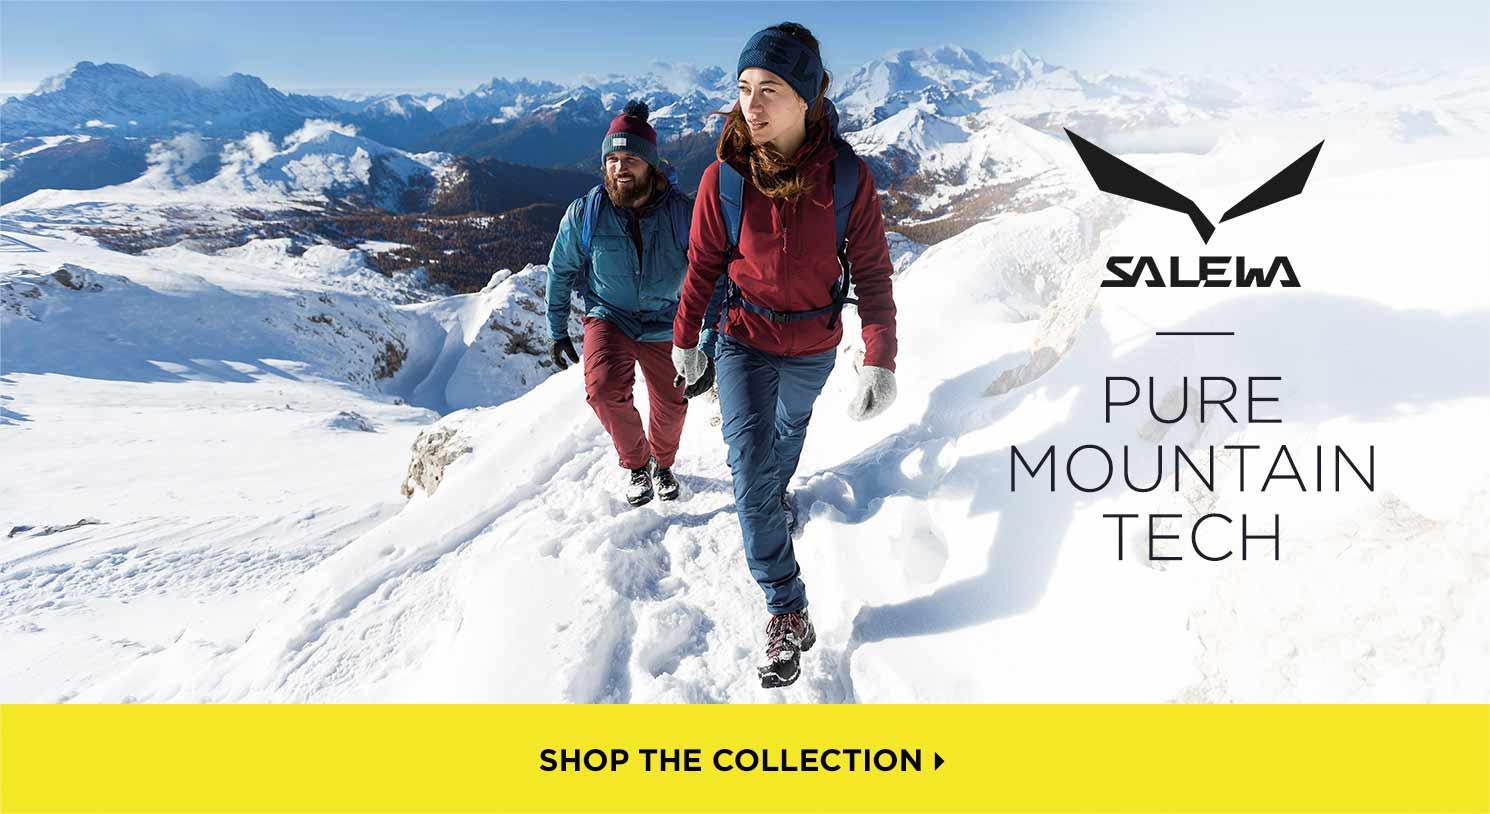 Salewa: Pure Mountain Tech